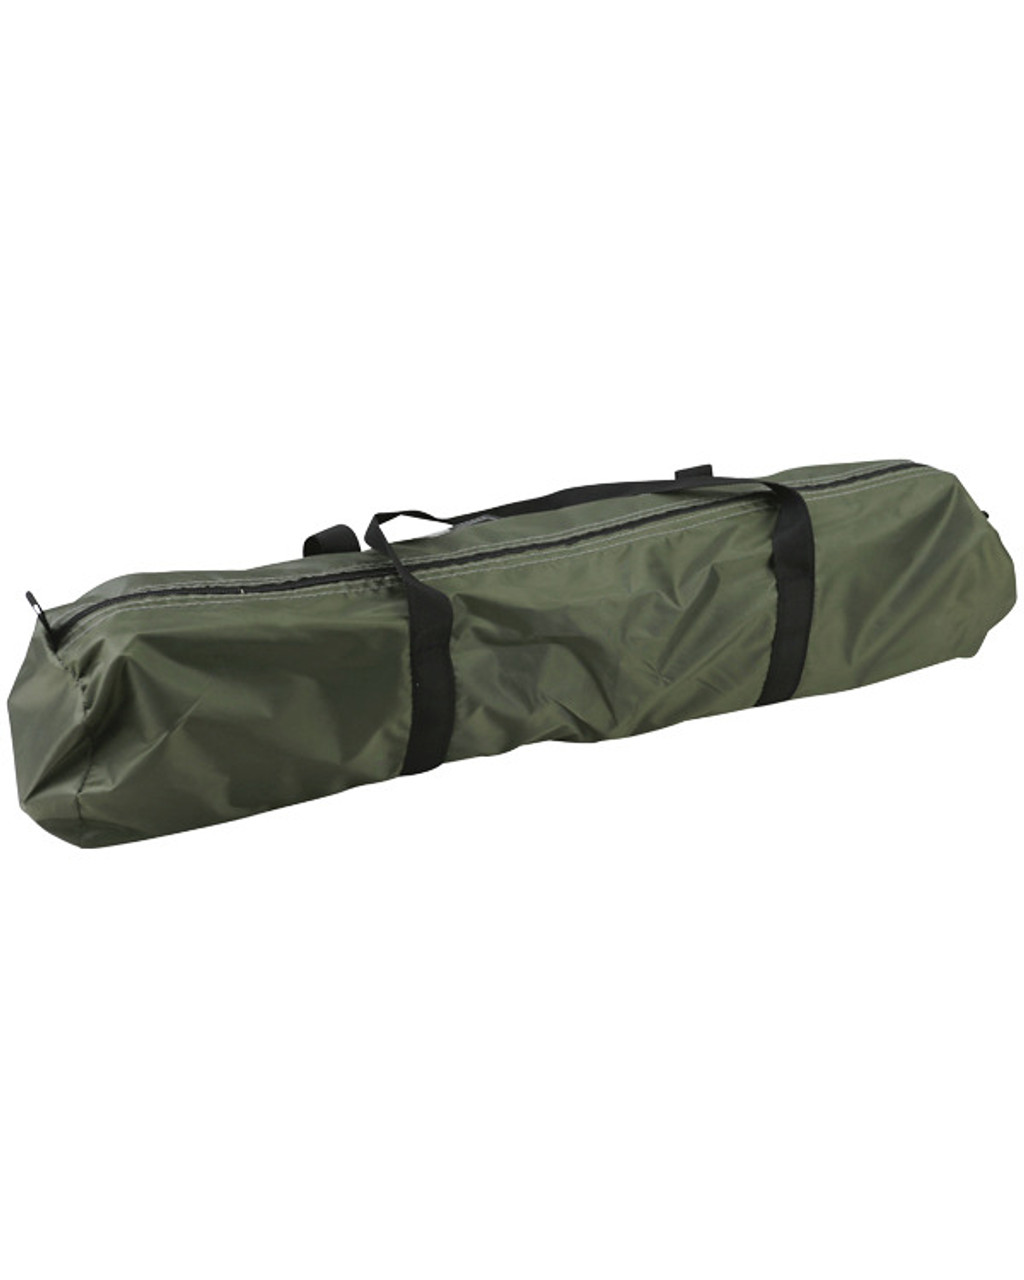 Elite Tent - Olive Green (2 Person, Twin Skin)